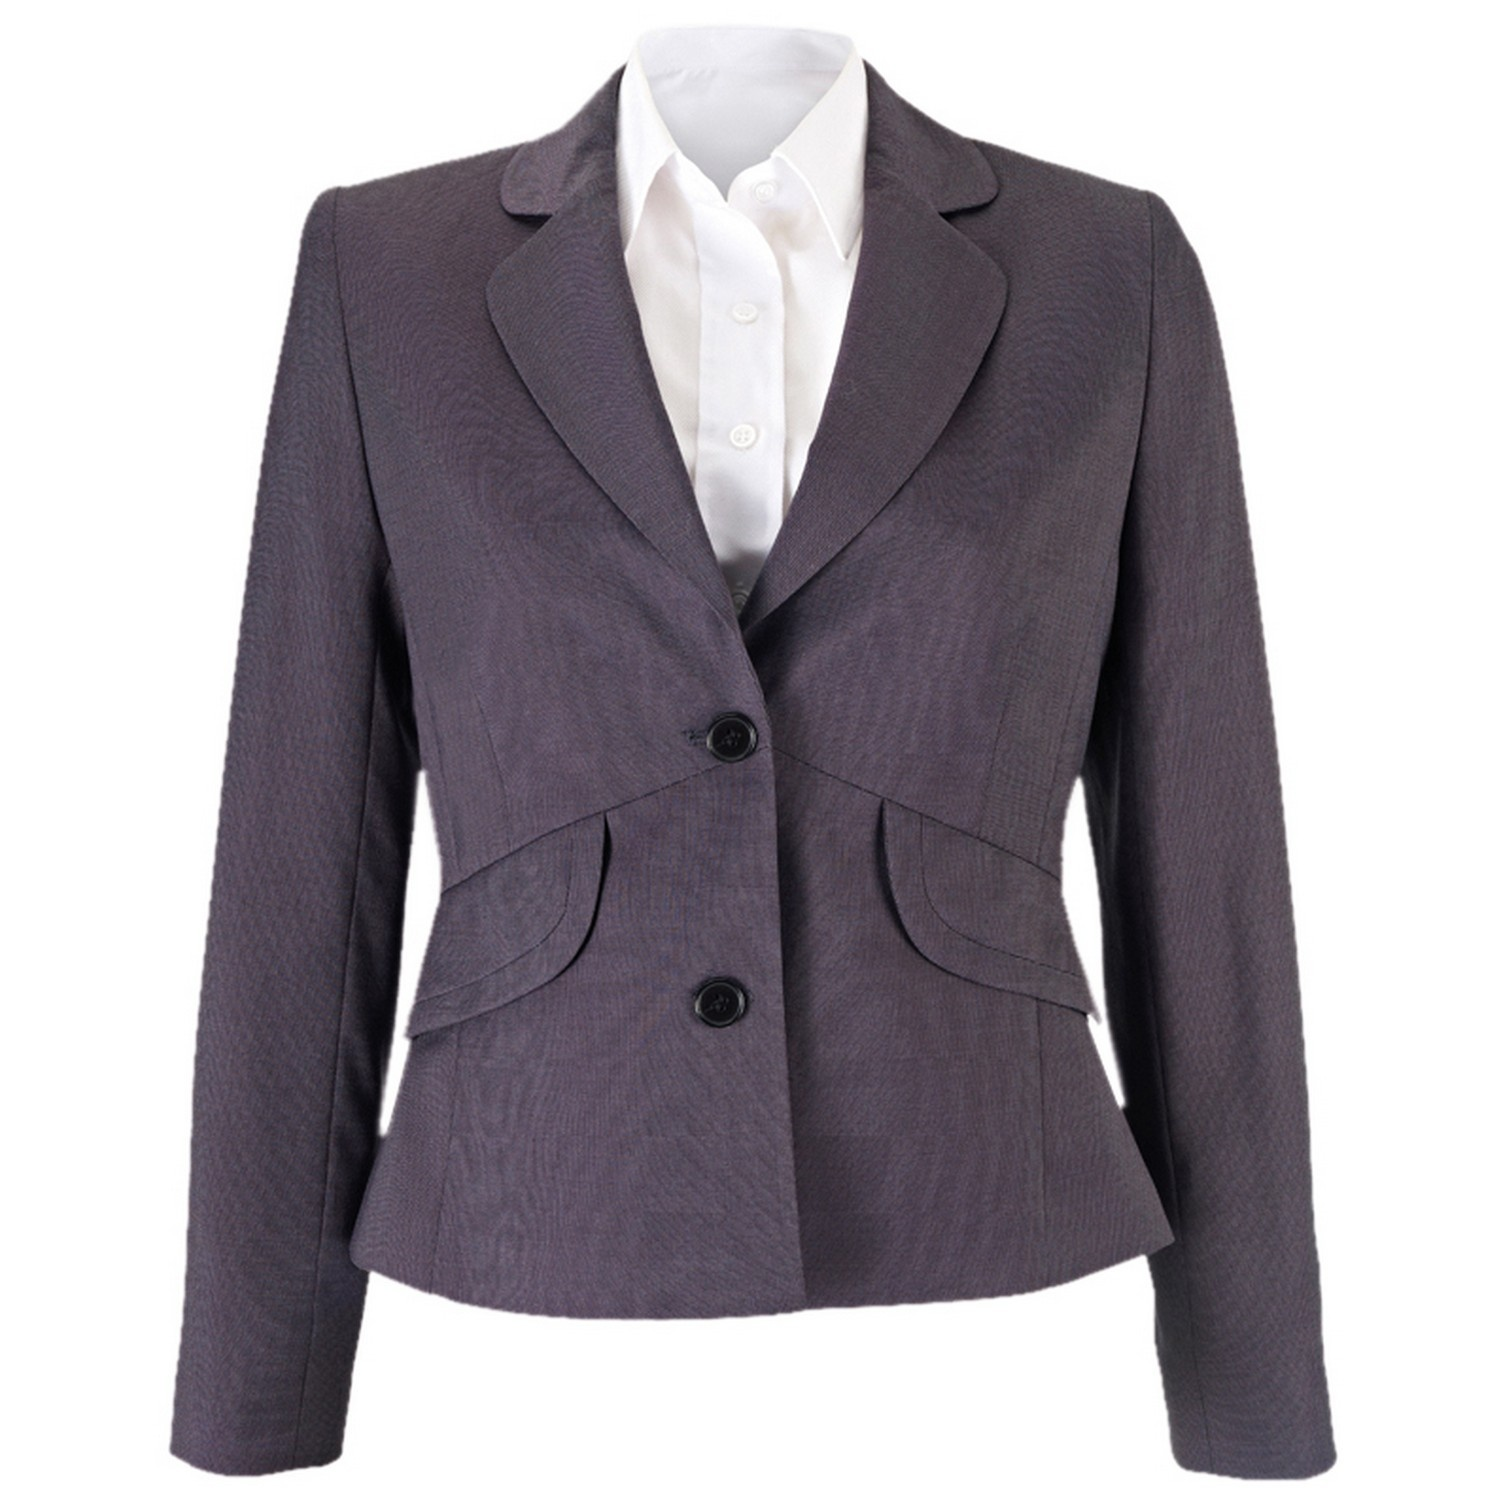 Alexandra Womens/Ladies Icona Formal Fitted Work Suit Jacket (14R) (Charcoal)